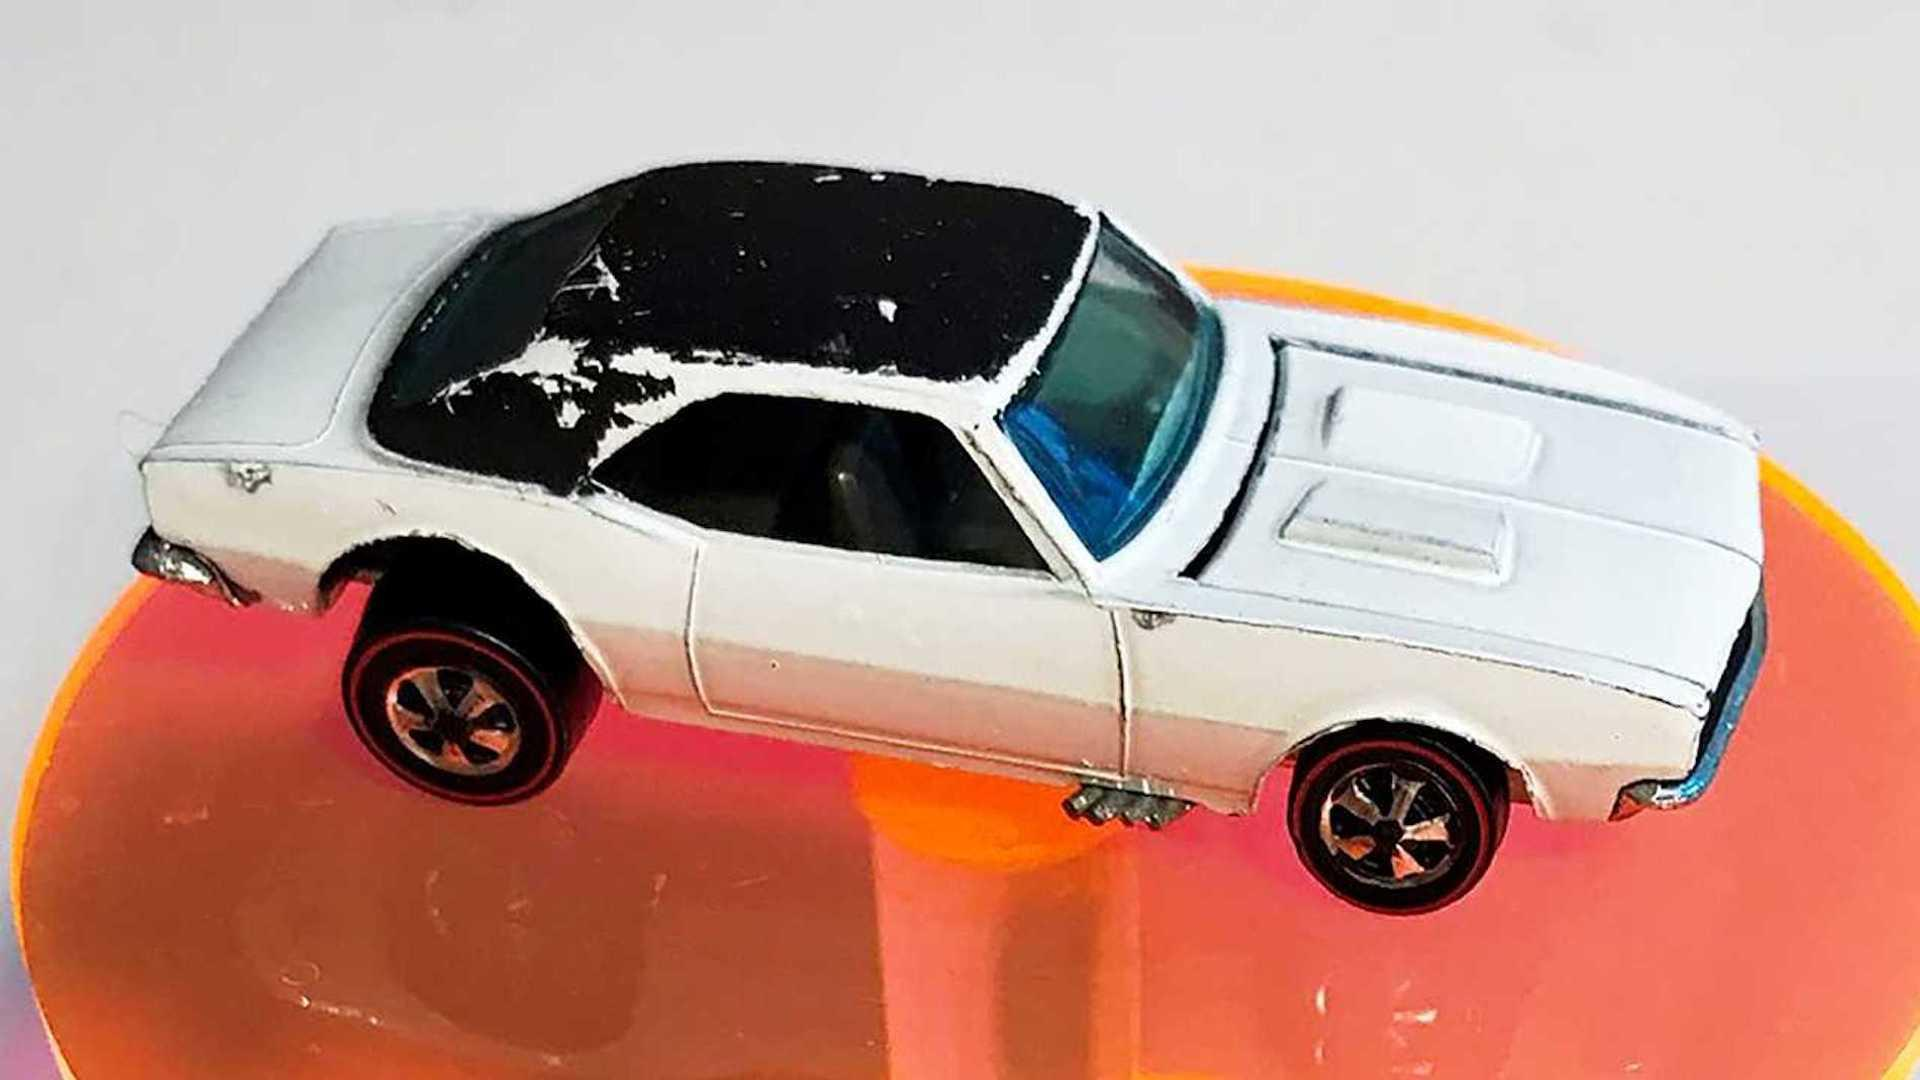 Man Finds Rare Hot Wheels Chevy Camaro Now Worth Over $100K